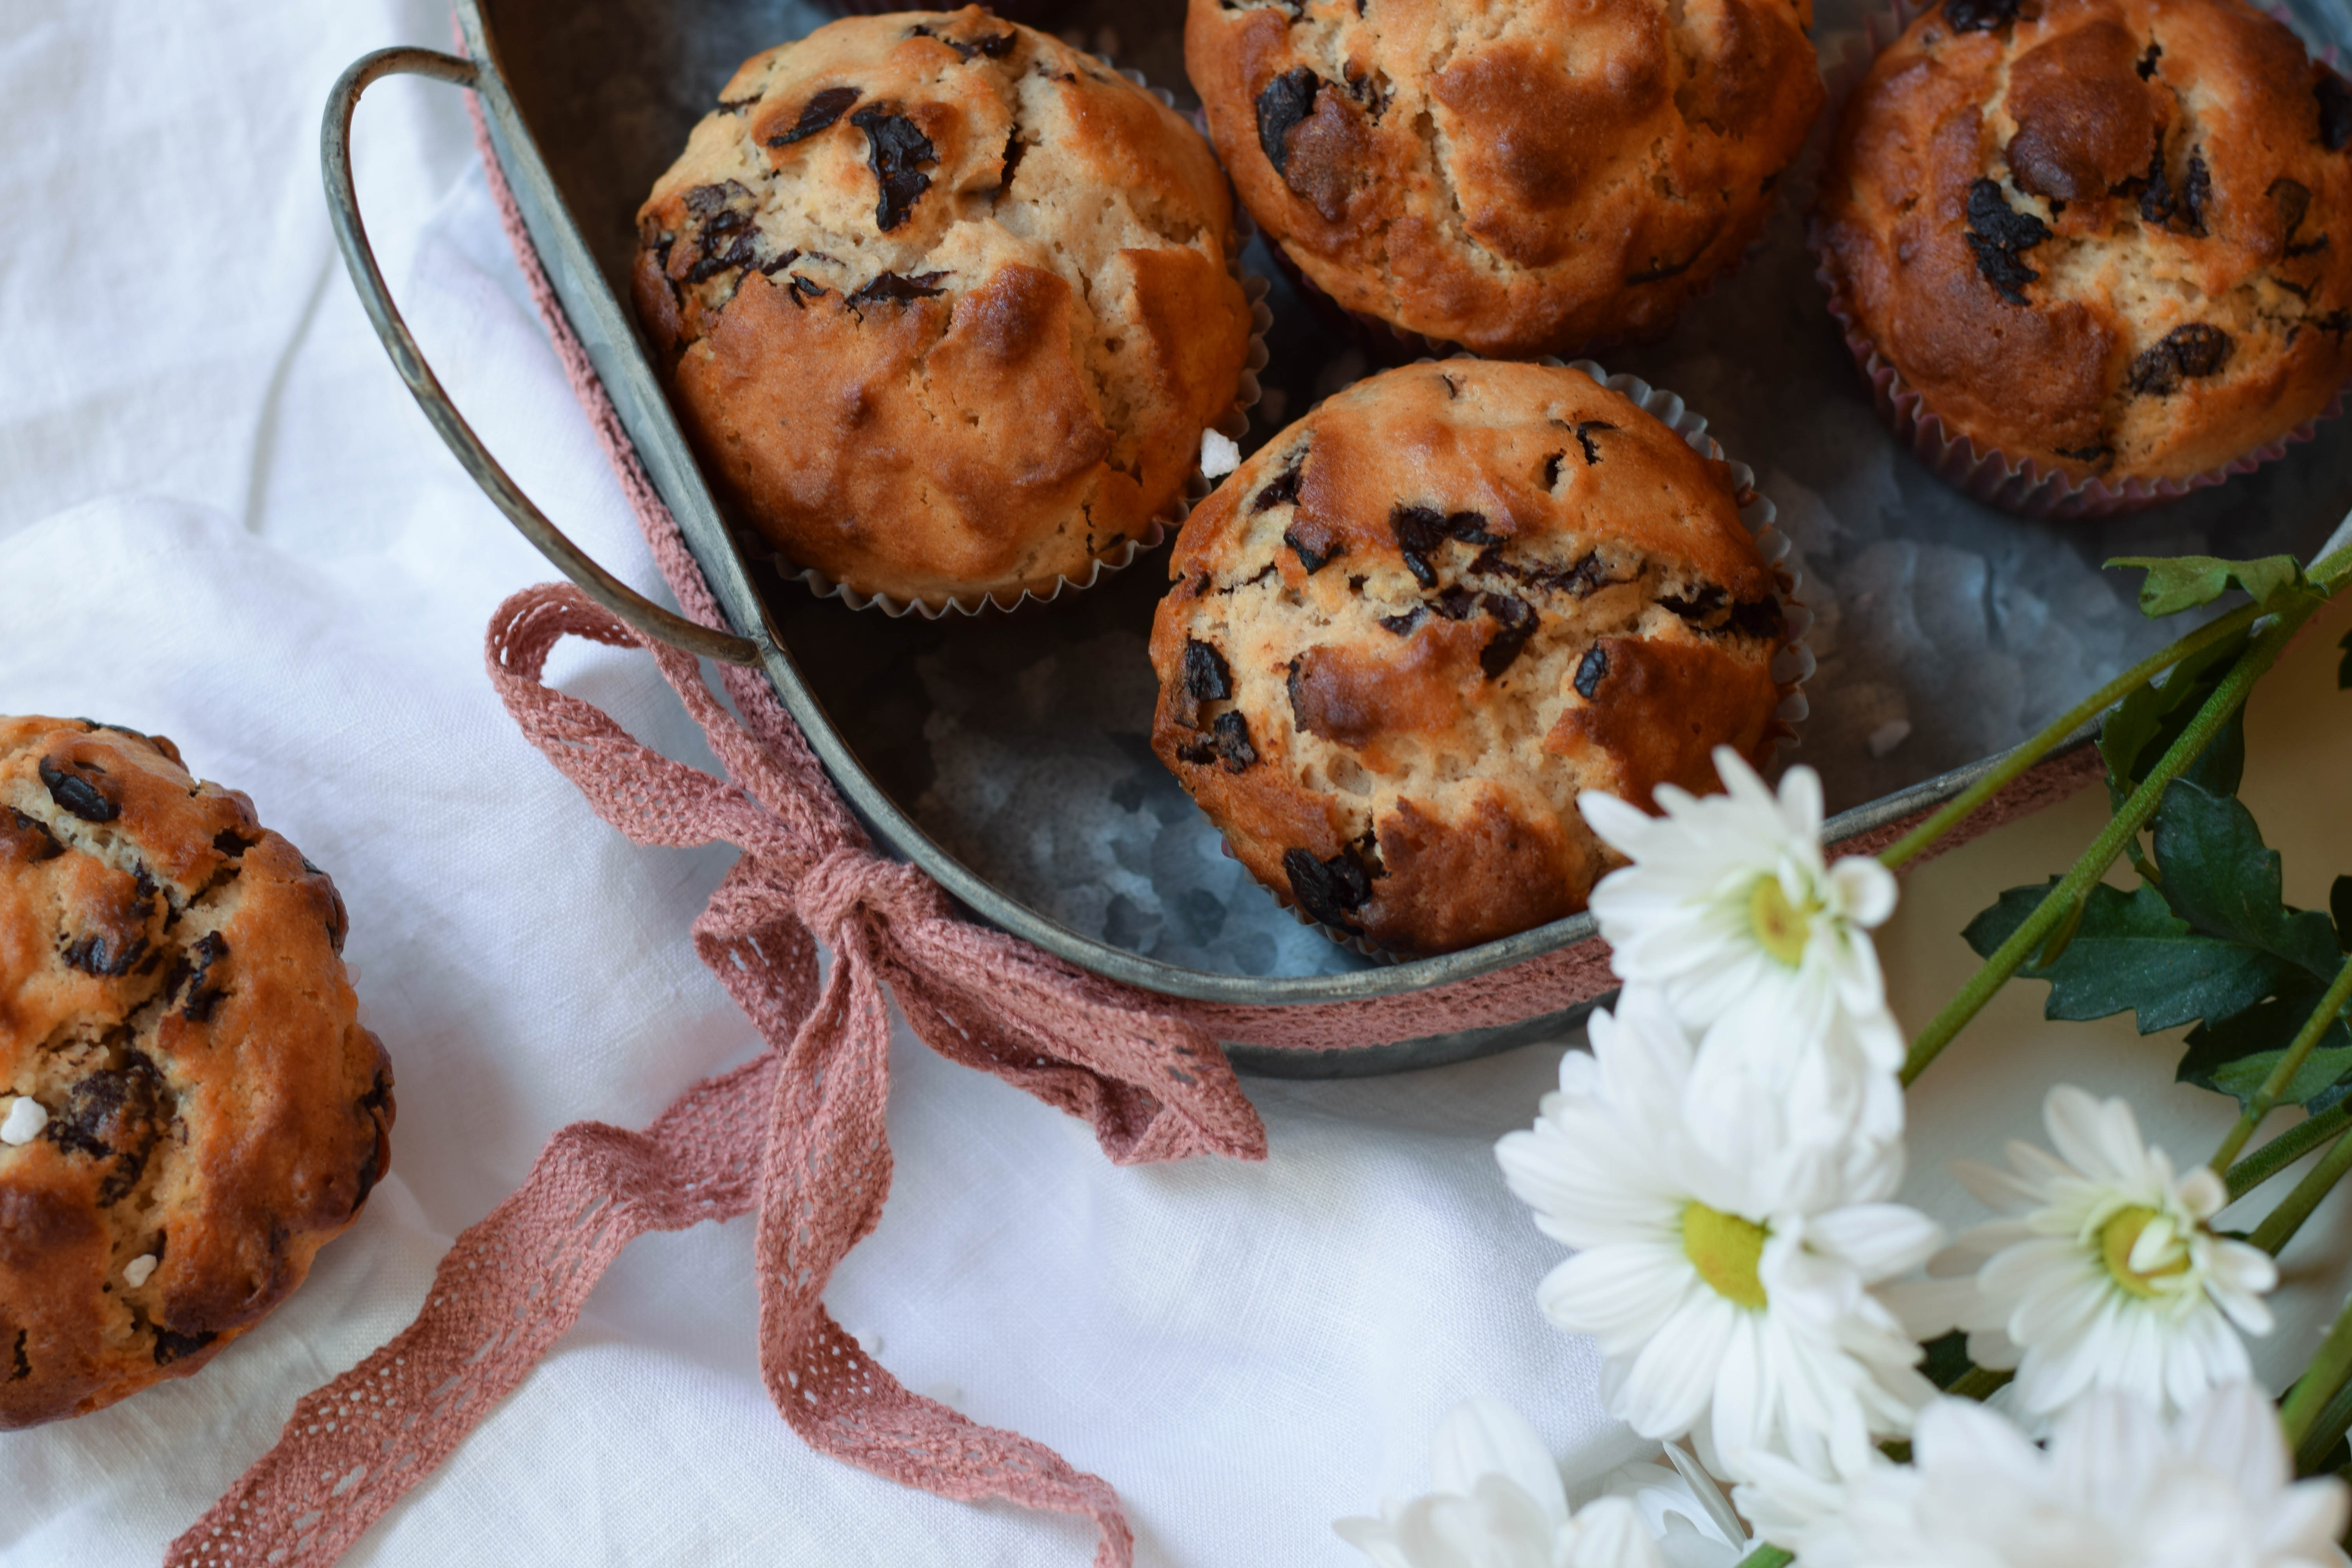 Sweets for my Sweets – Chocolate Chip Muffins